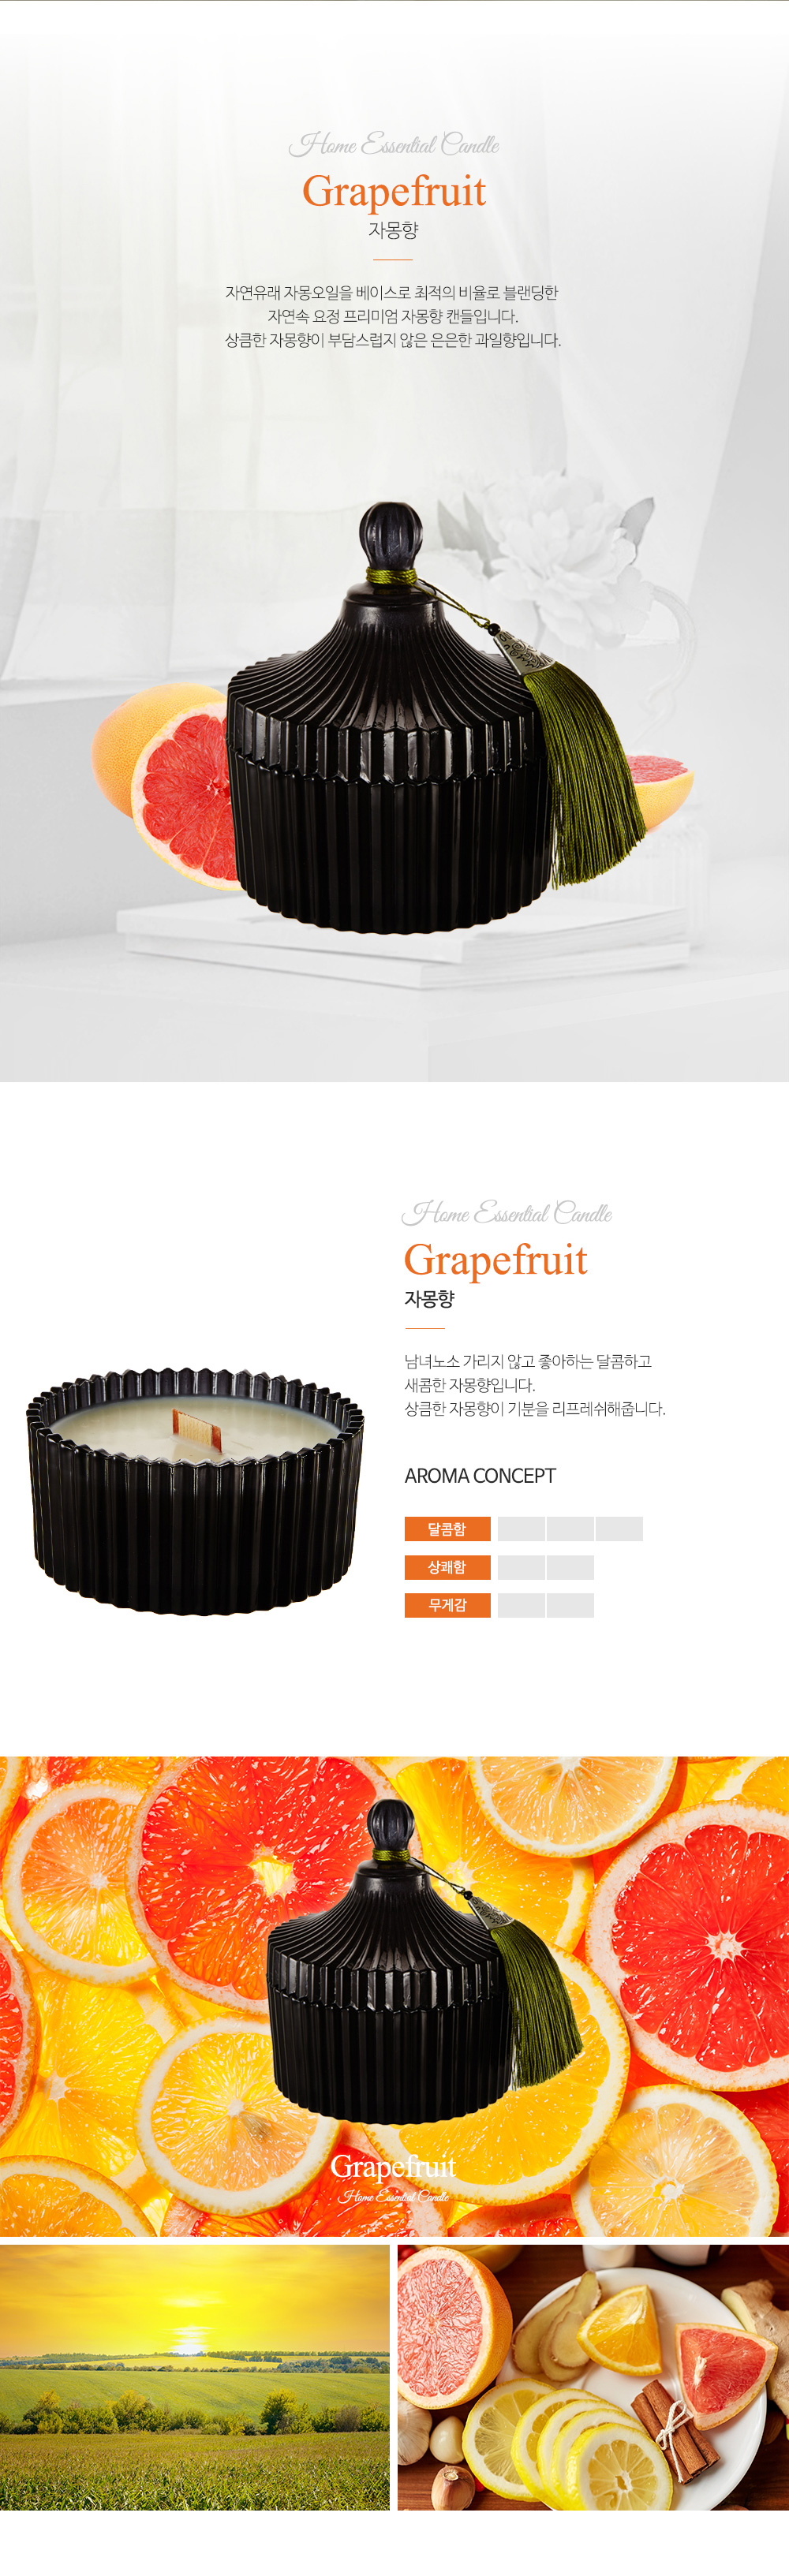 candle-merrygo_grapefruit_02.jpg